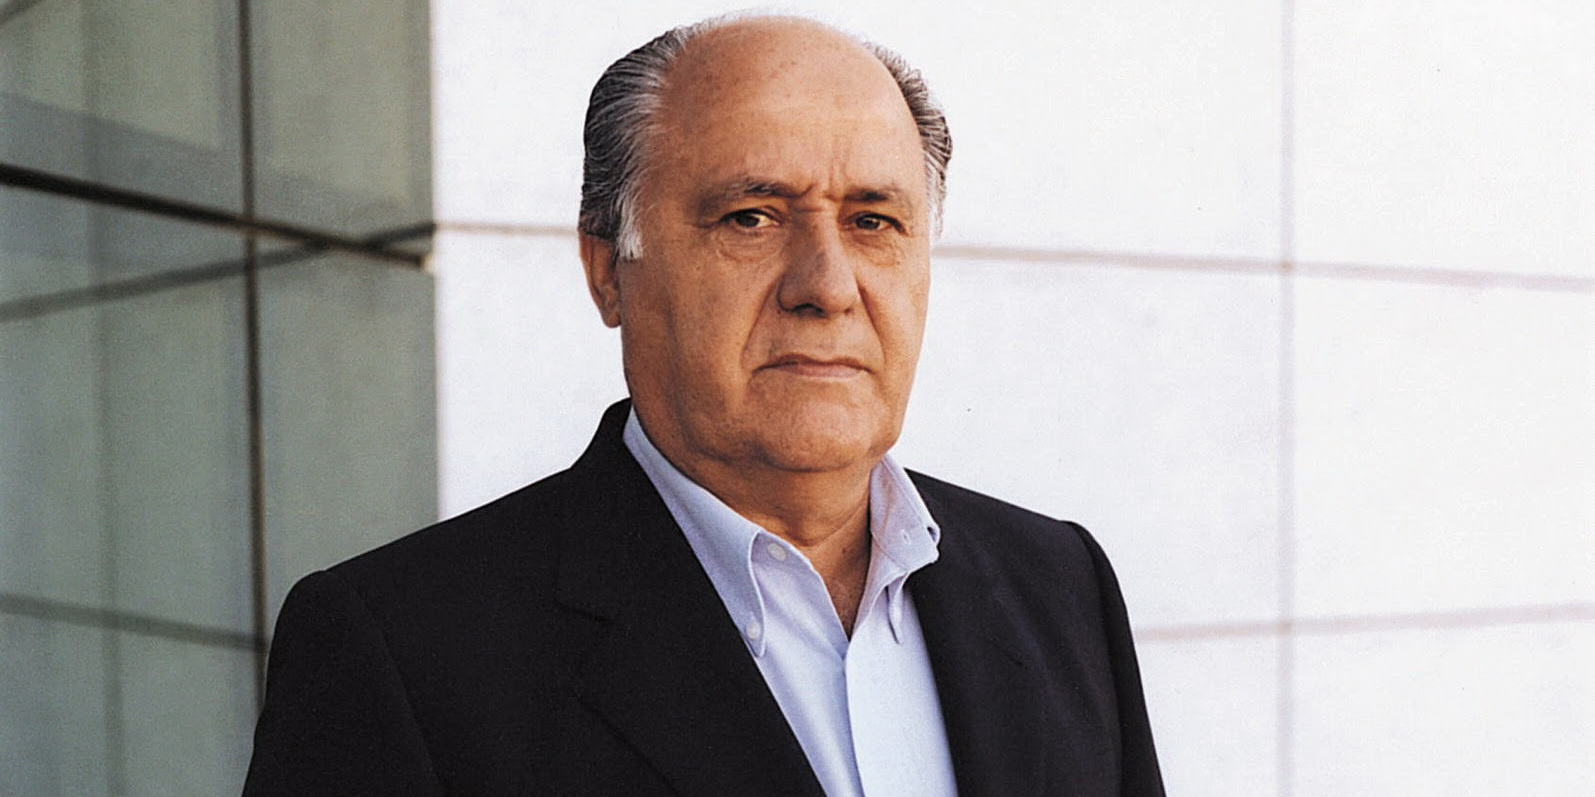 Amancio Ortega Gaona Net Worth The Owner of Zara, Is Now Richer Than Warren Buffett